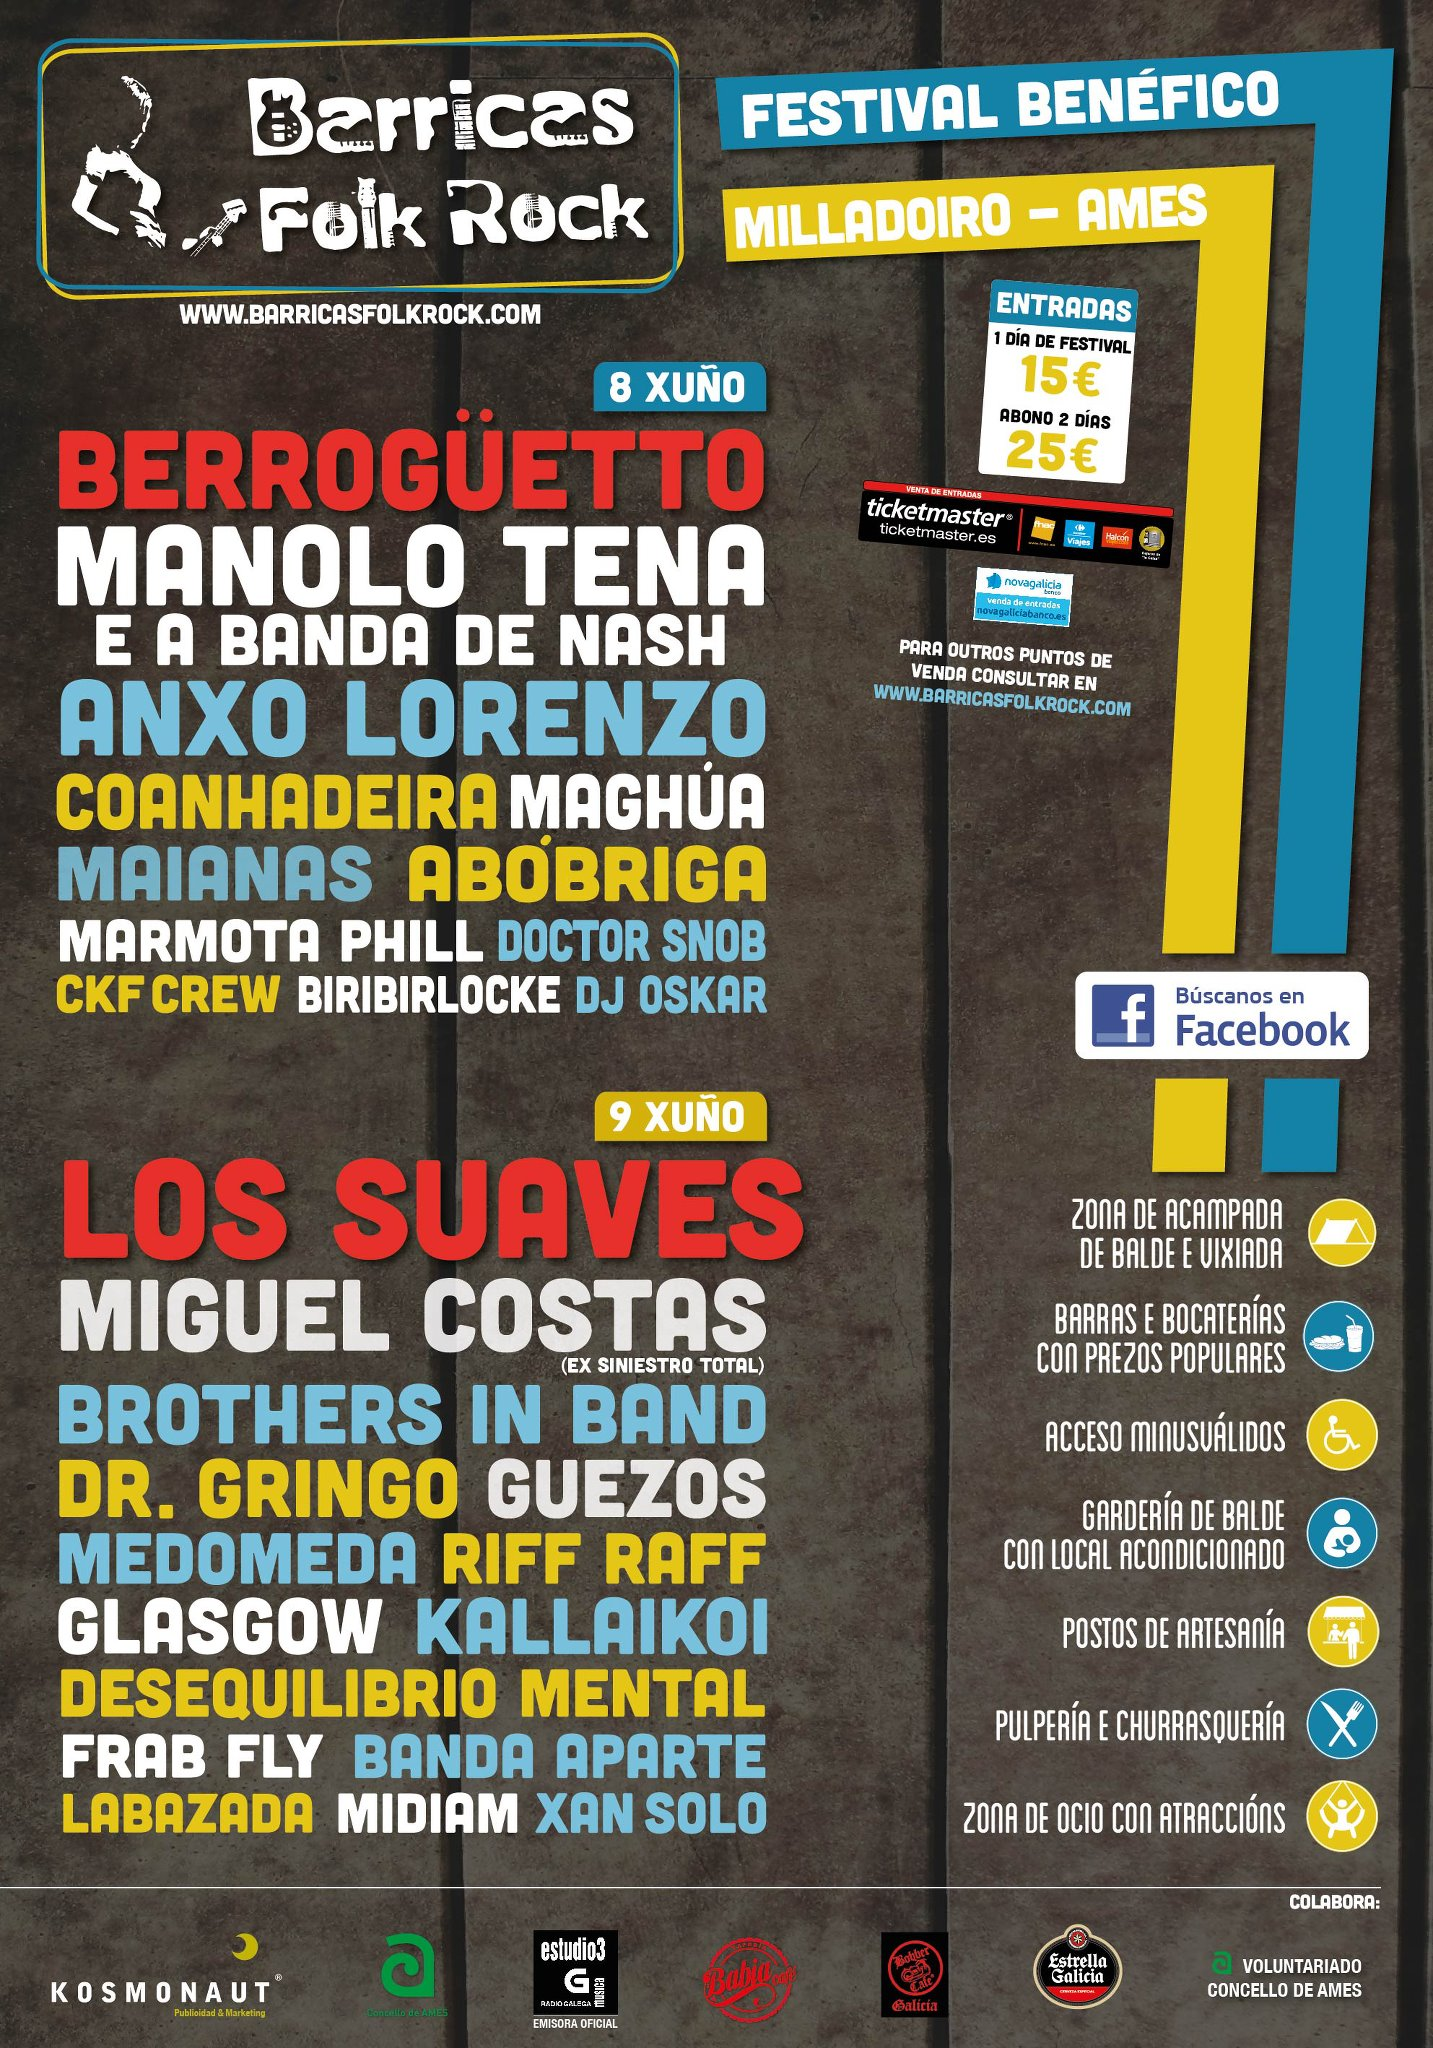 Barricas Folk Rock 2012